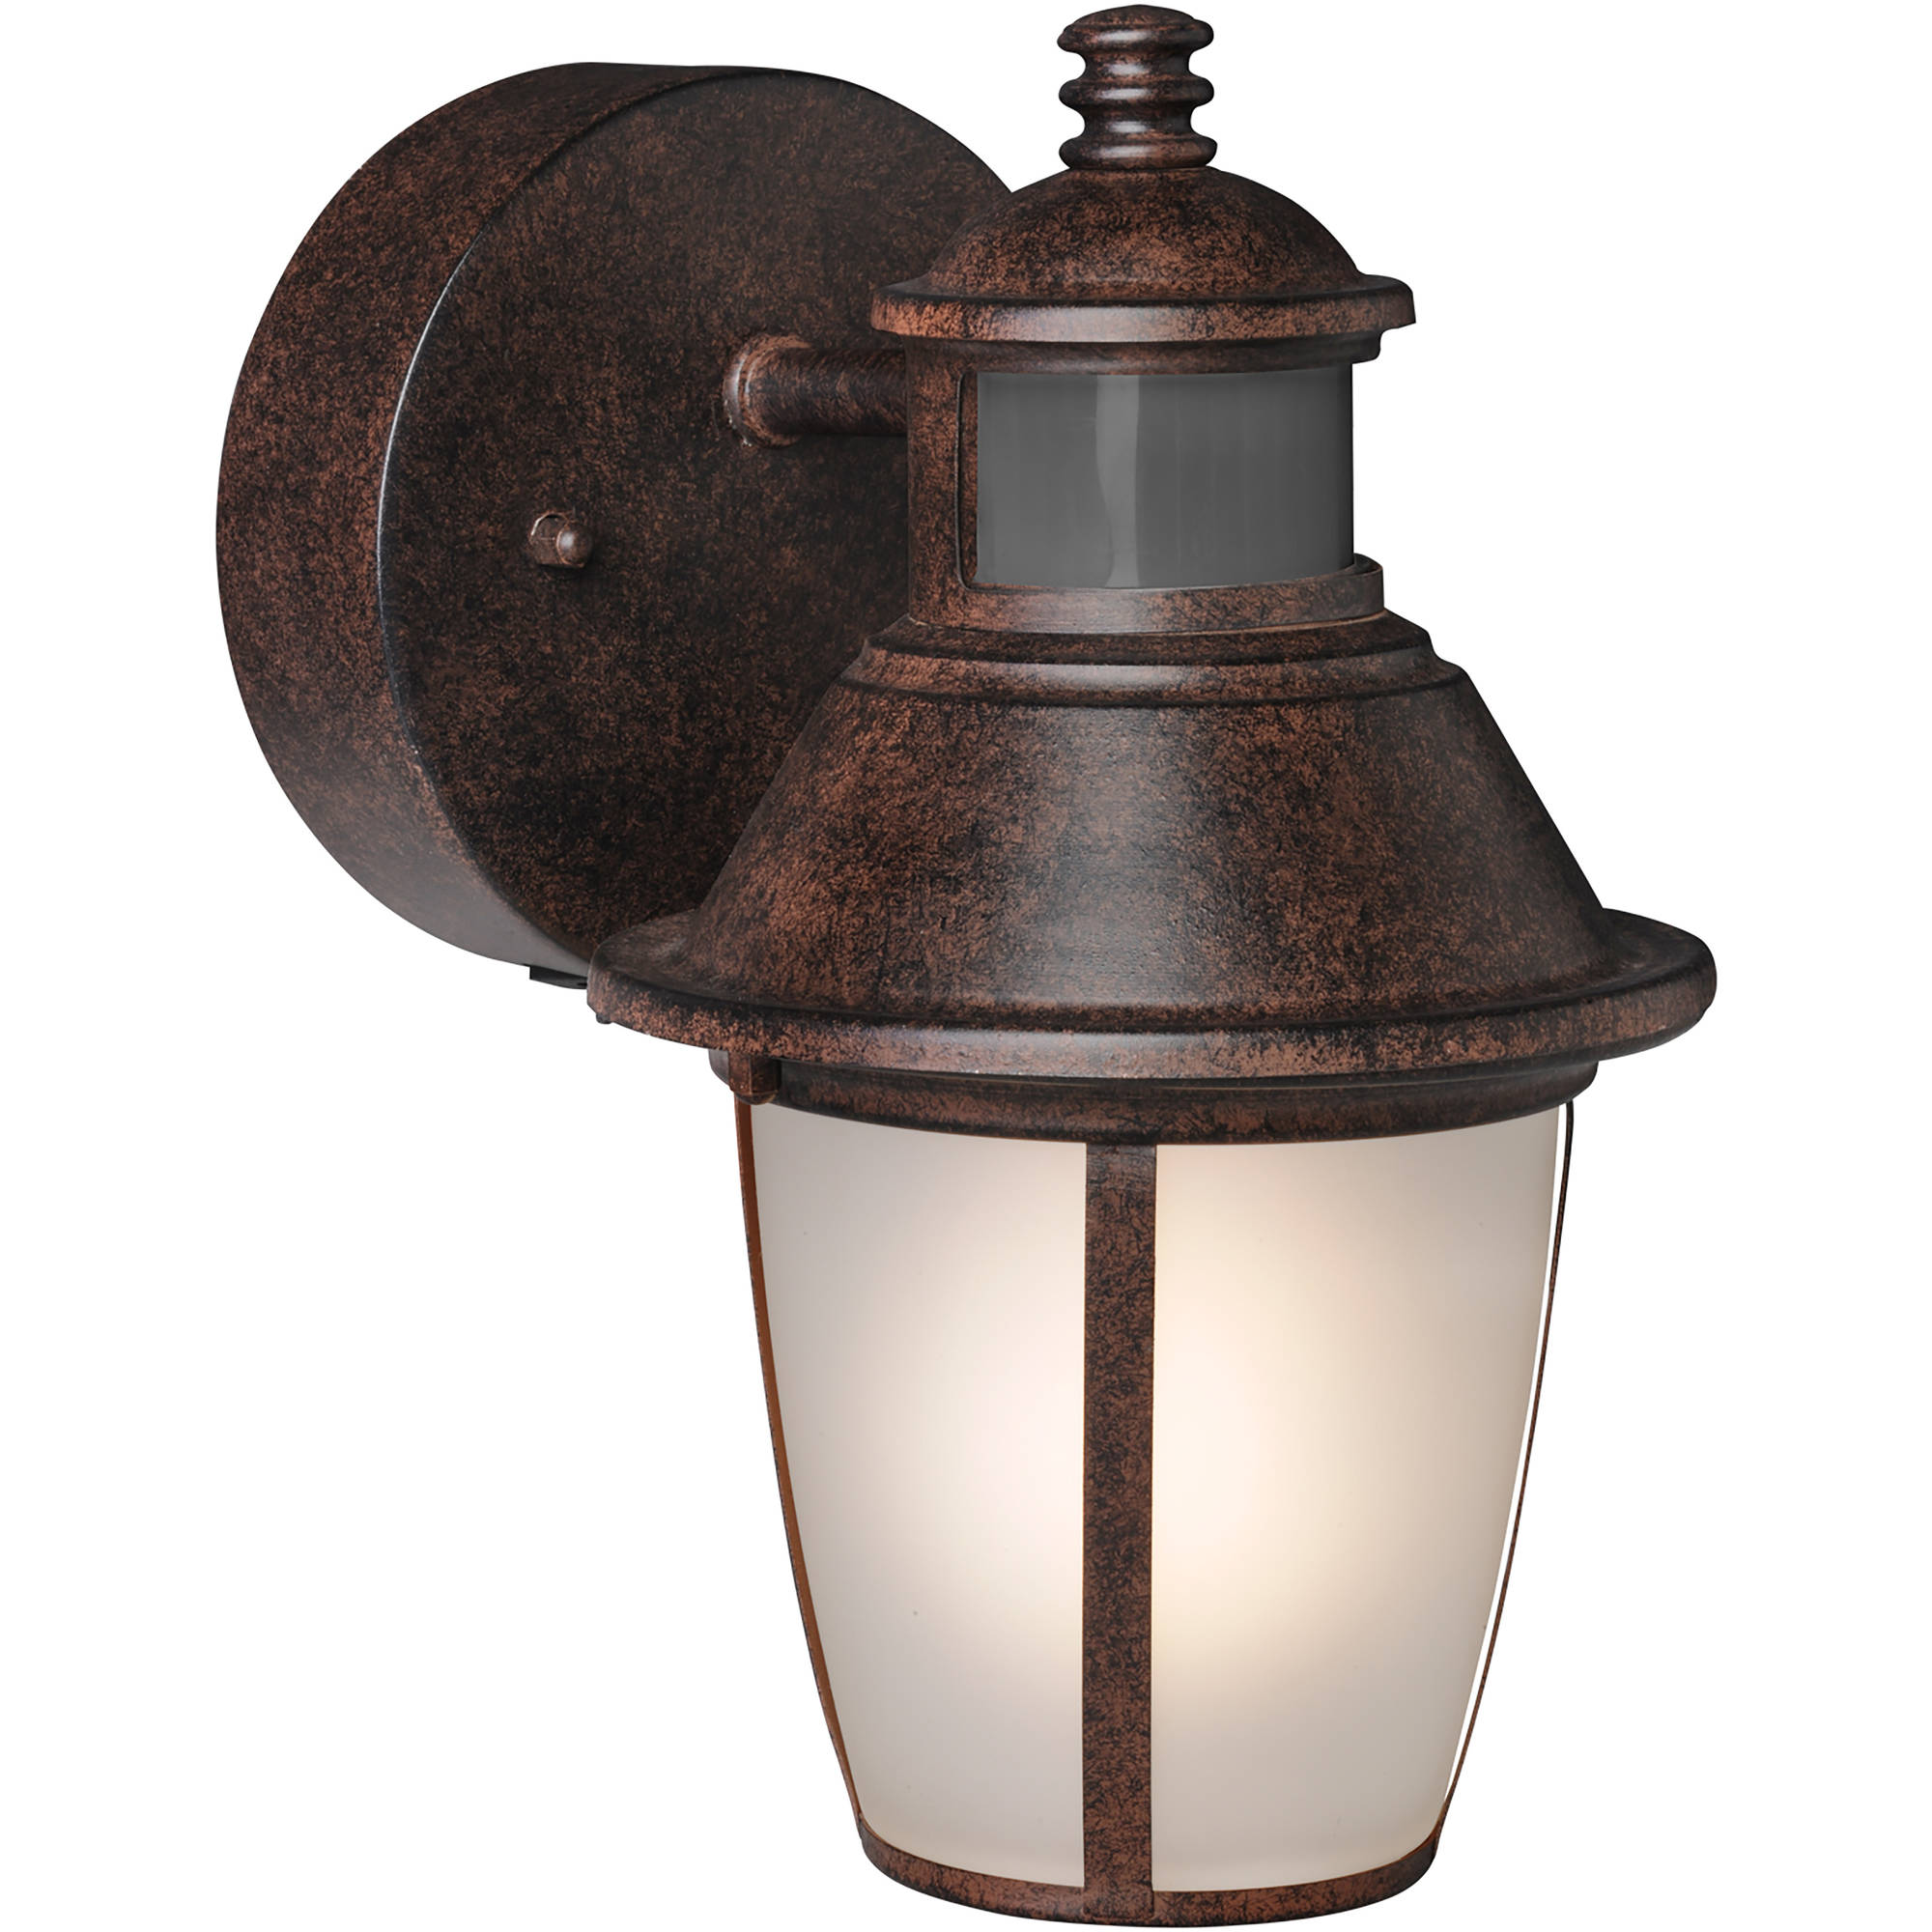 Brink S Led Motion Activated Security Lantern Antique